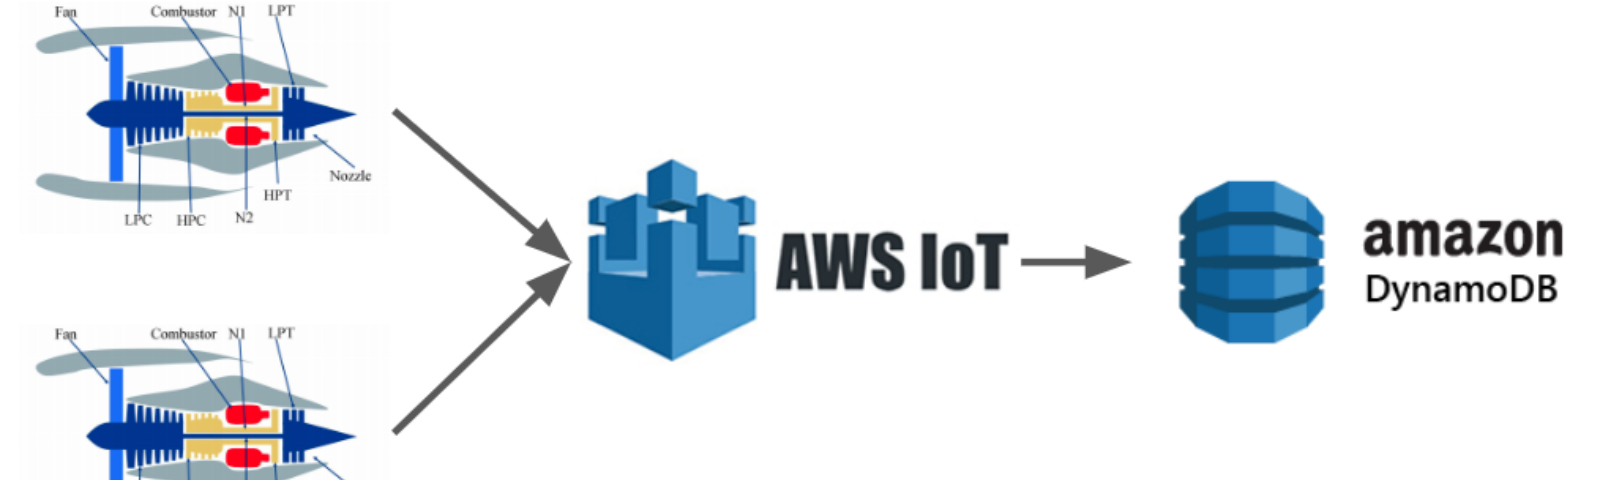 A Guide To Simulate IoT Pipeline on AWS platform - Minh Nguyen - Medium